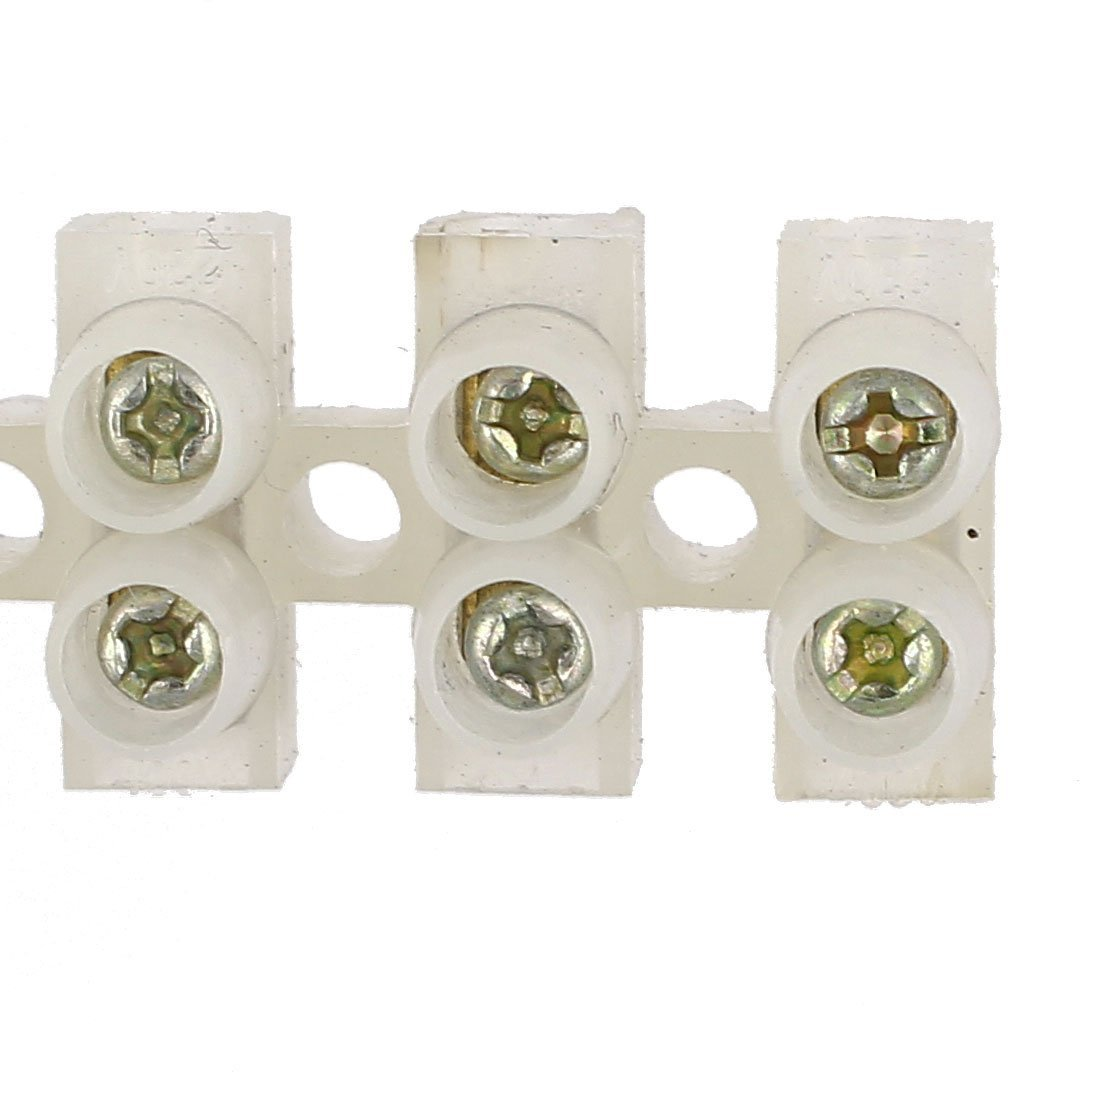 uxcell 12 Position Barrier Terminal Strip Block Wire Connector X3-0612 10pcs a16031100ux0323